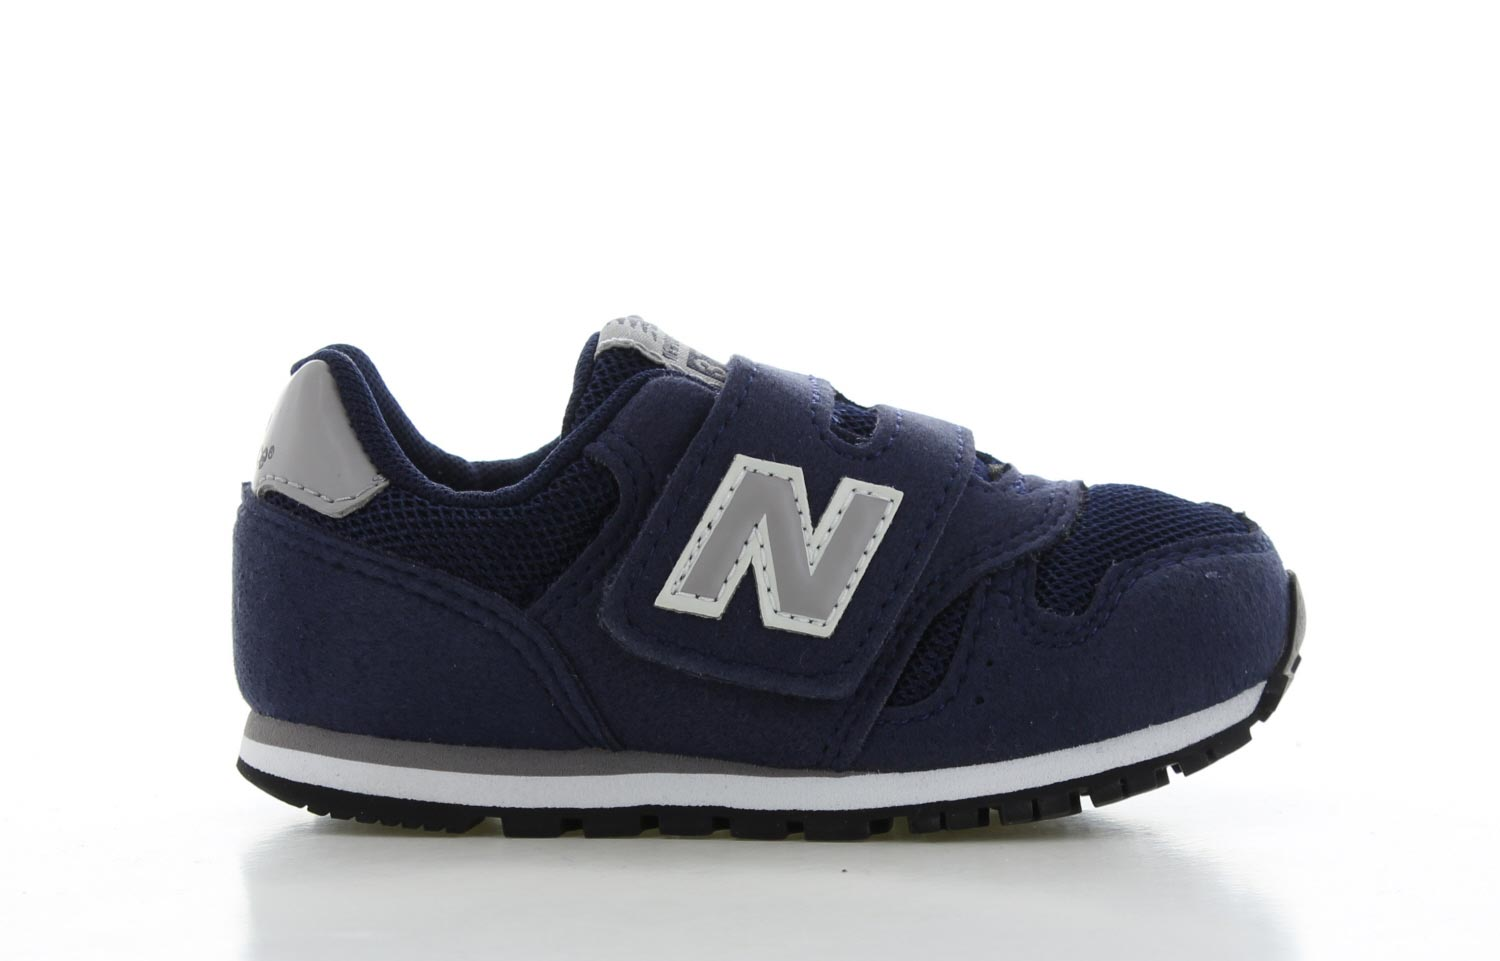 Image of New Balance Yv373nv Donkerblauw Peuters